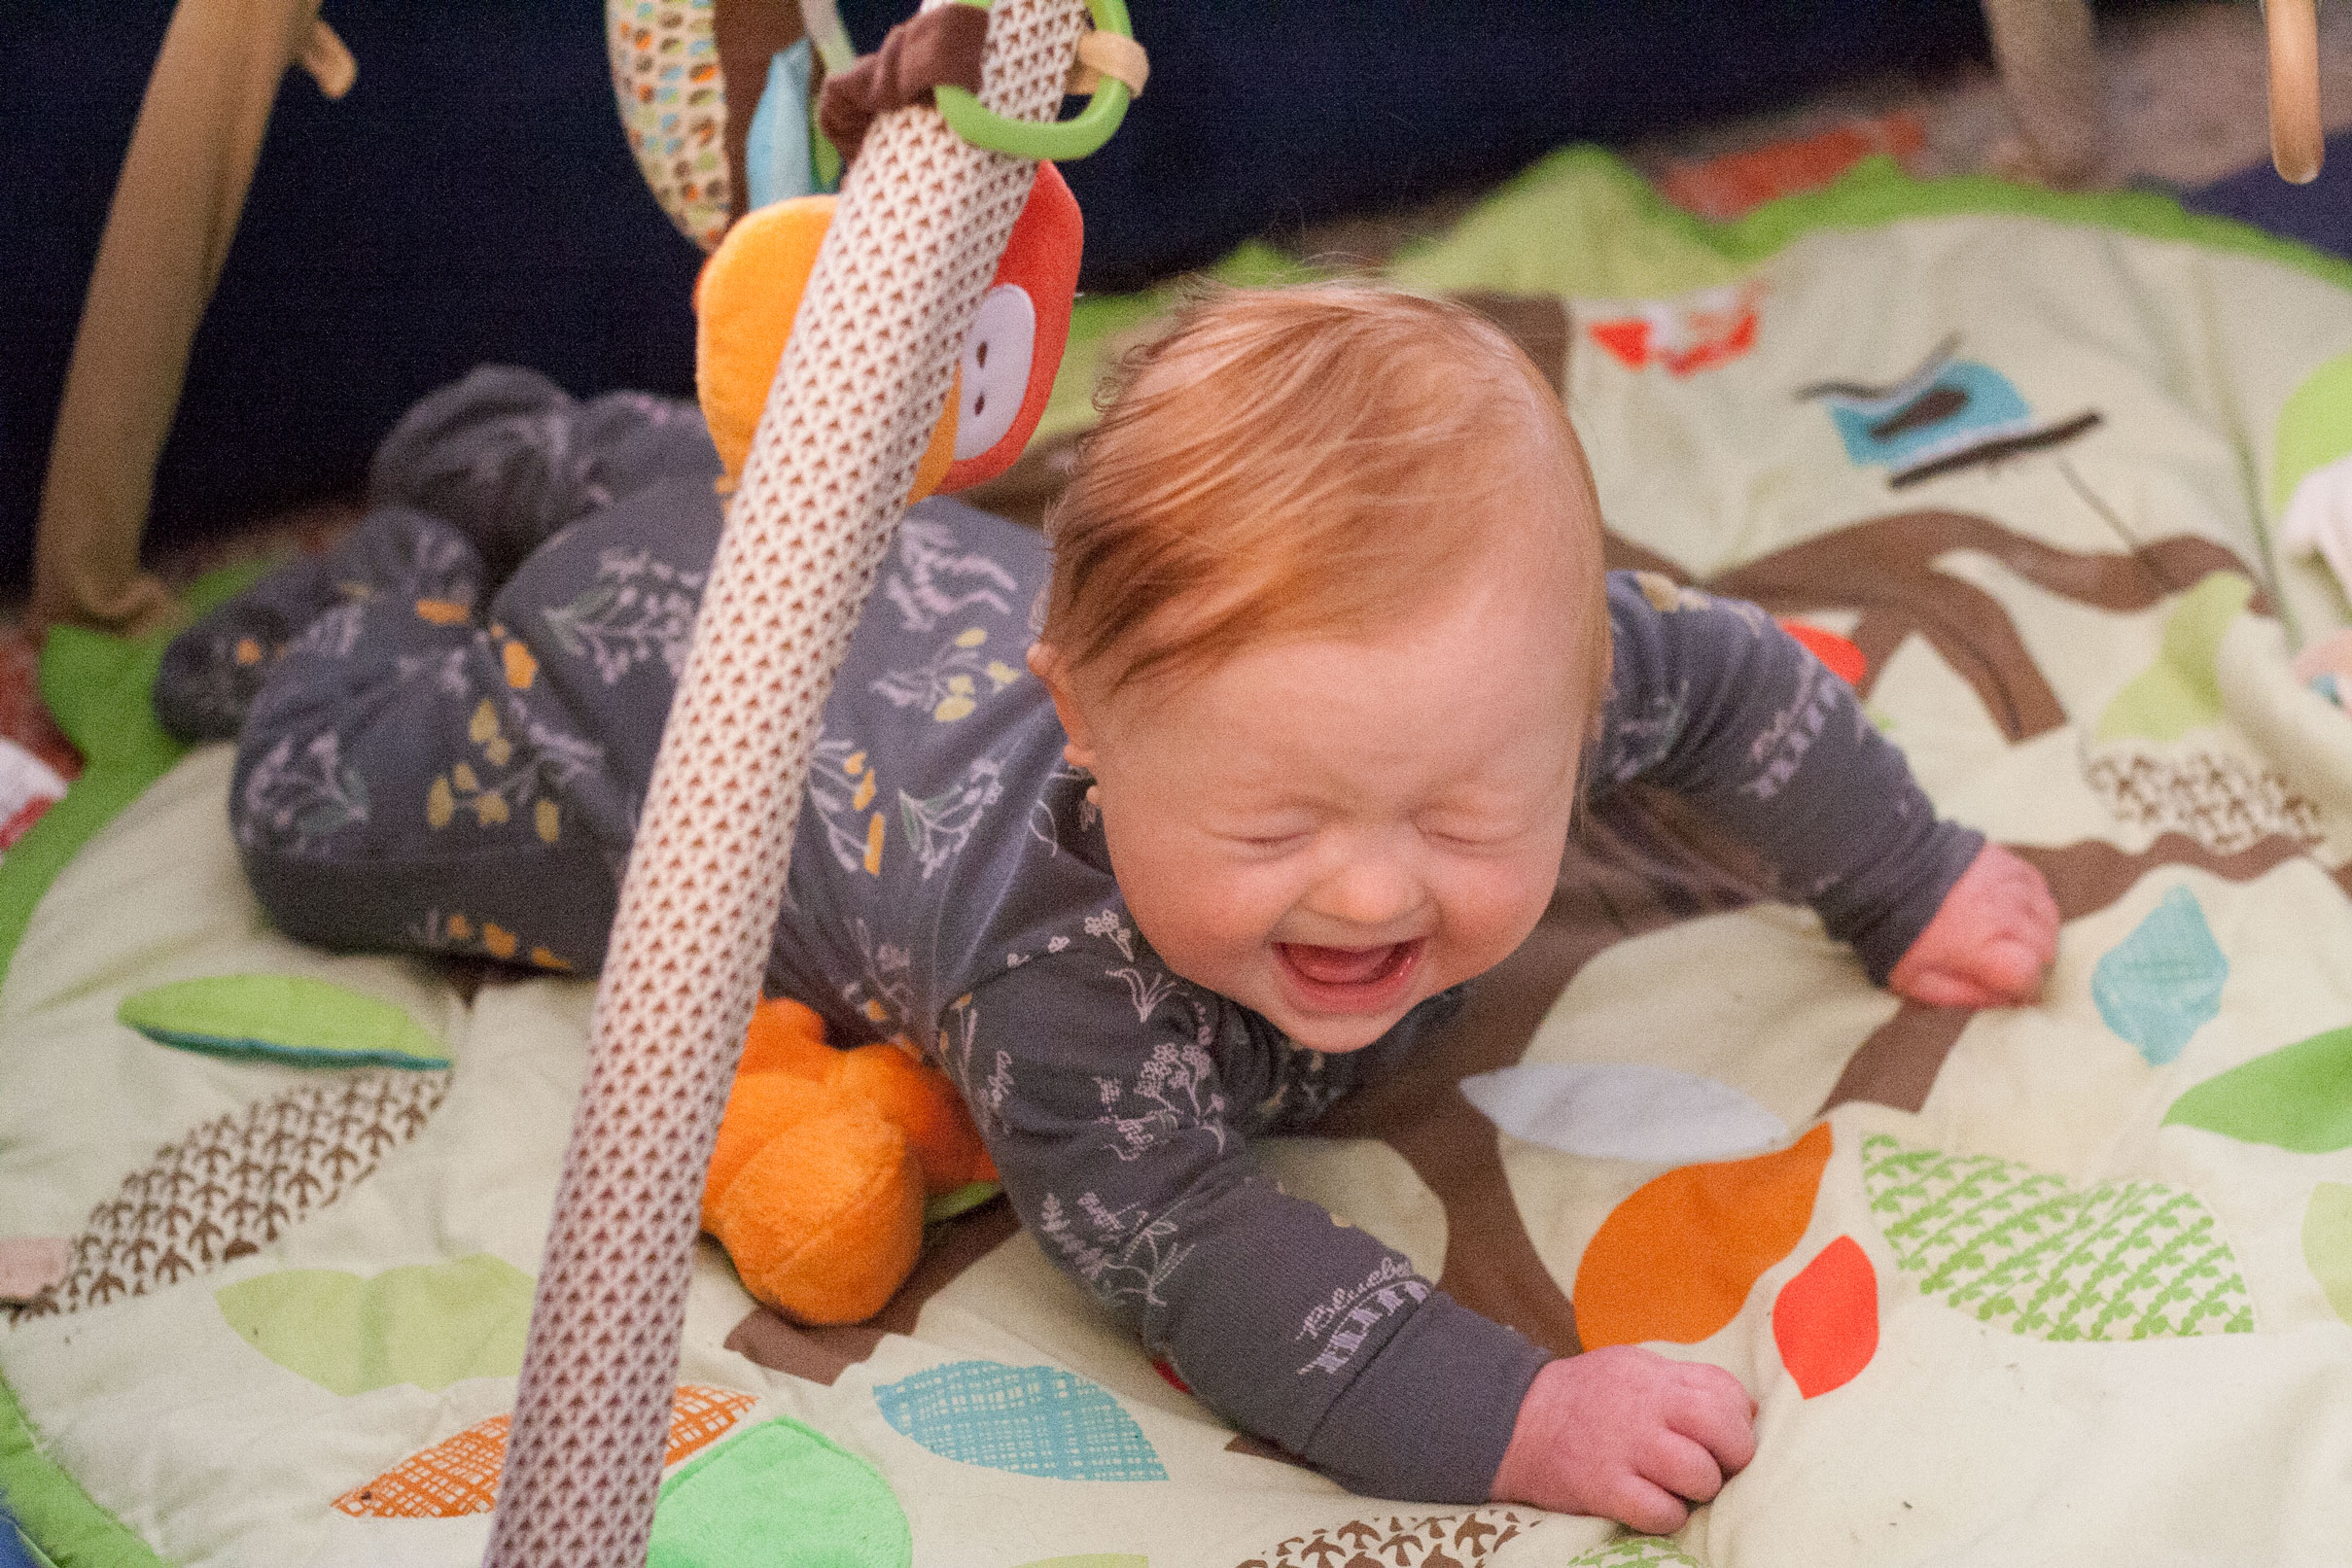 bit-and-bauble-elsa-6-month-baby-update-down-syndrome-4